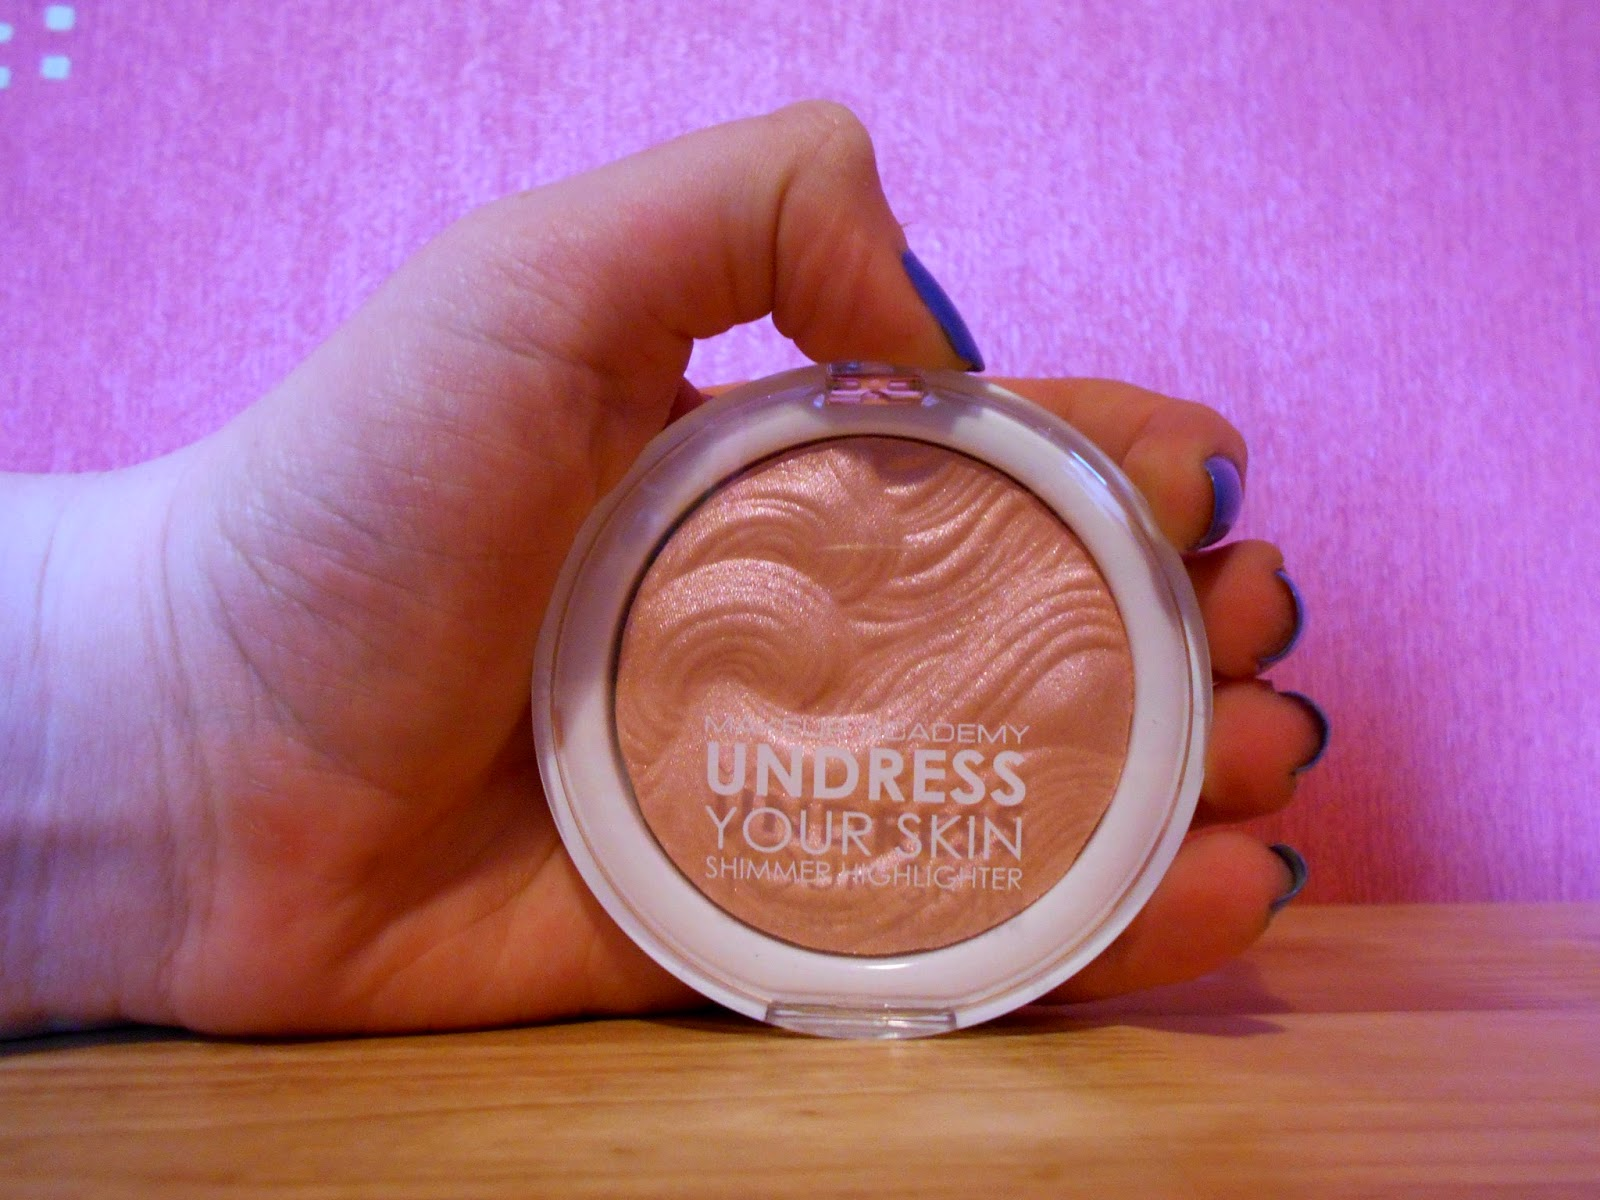 Makeup Academy Undress Your Skin Shimmer Highlighter